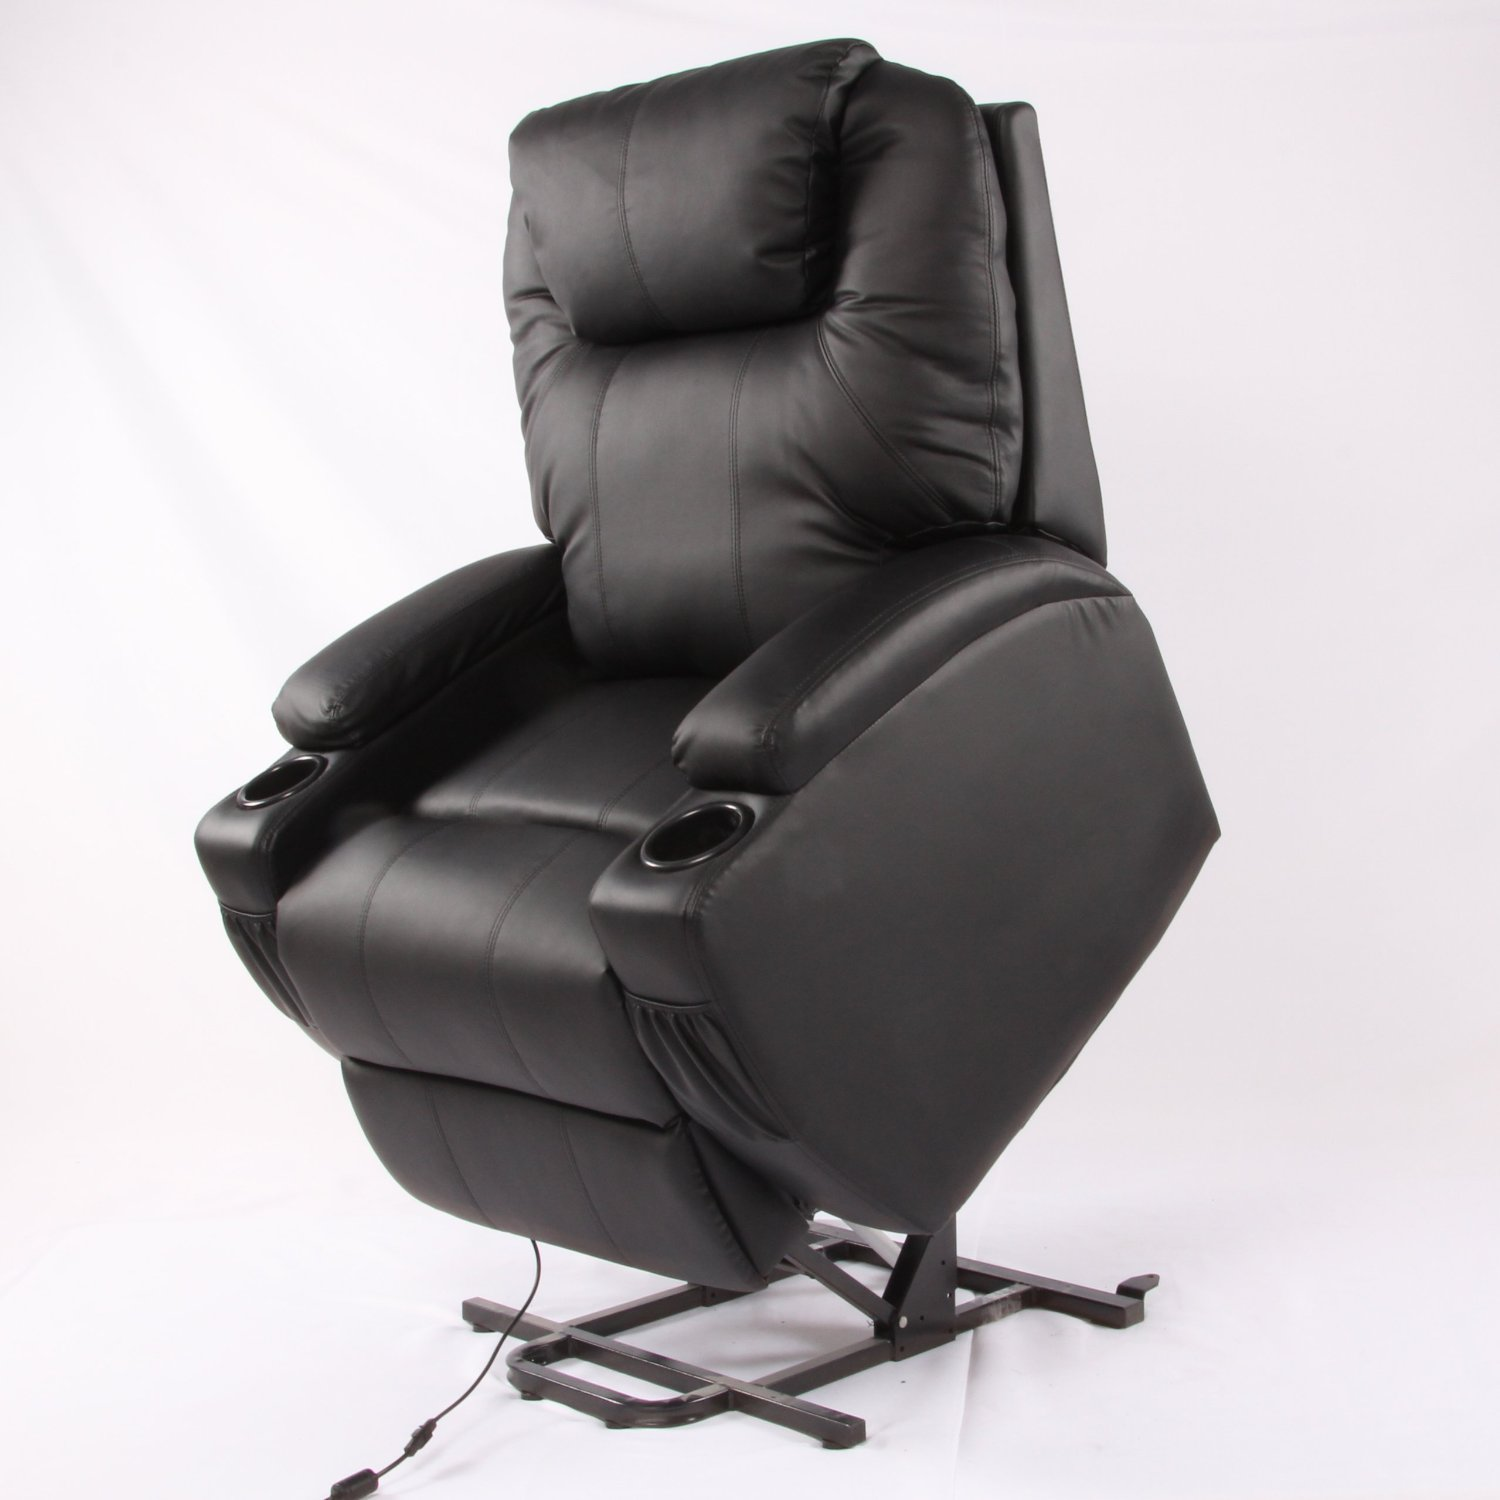 Bettsofa Elektrisch Bettsofa Leder Great Top Sofa Leder Desede Kaum Gebraucht Ca X Cm